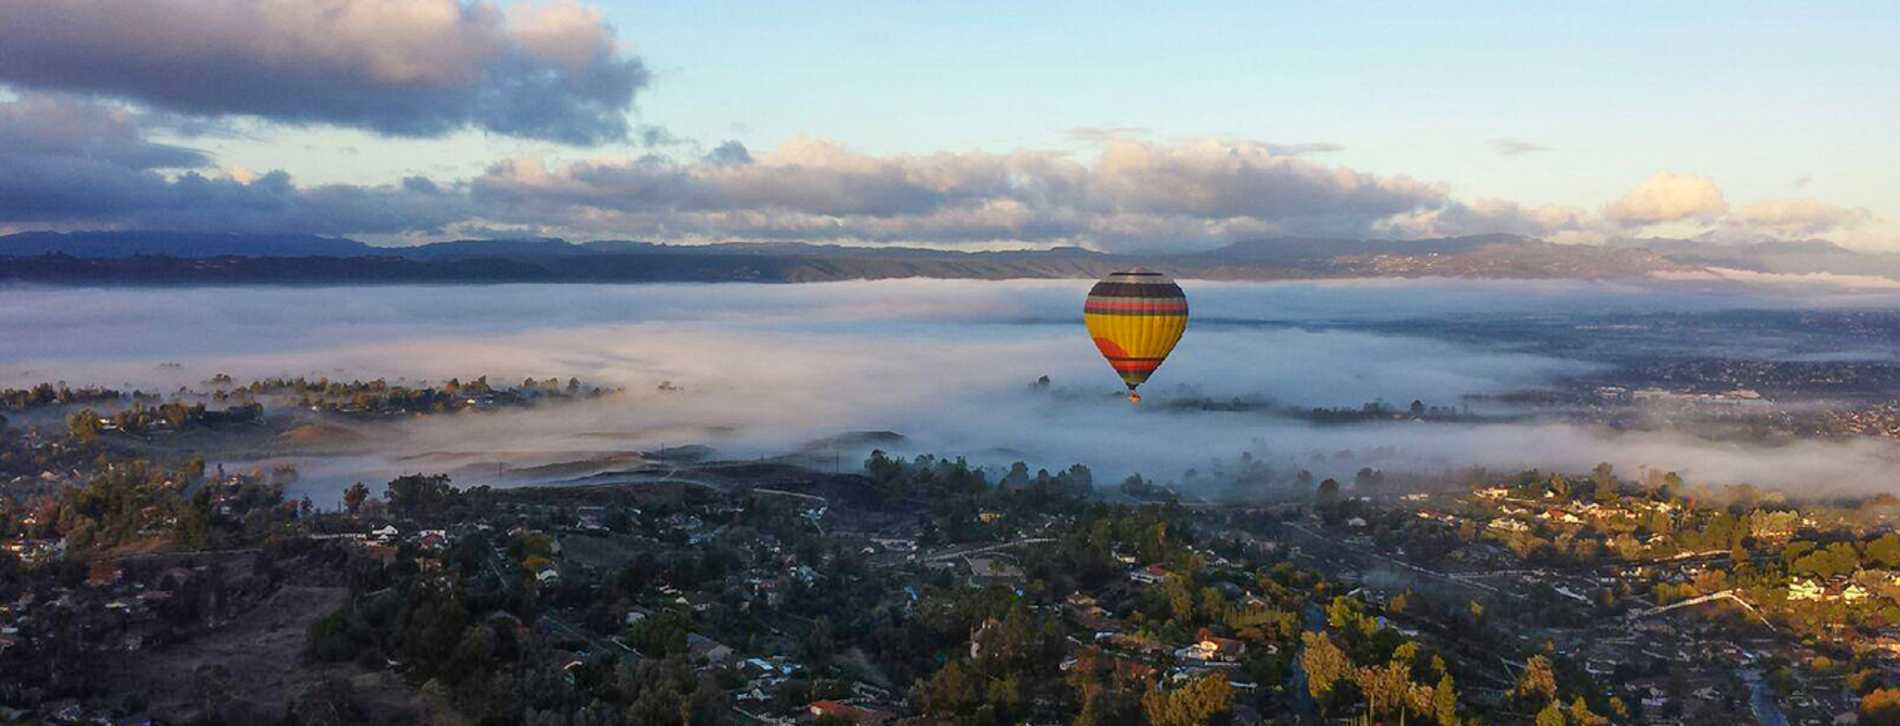 Panorama- A Balloon Adventure By California Dreamin